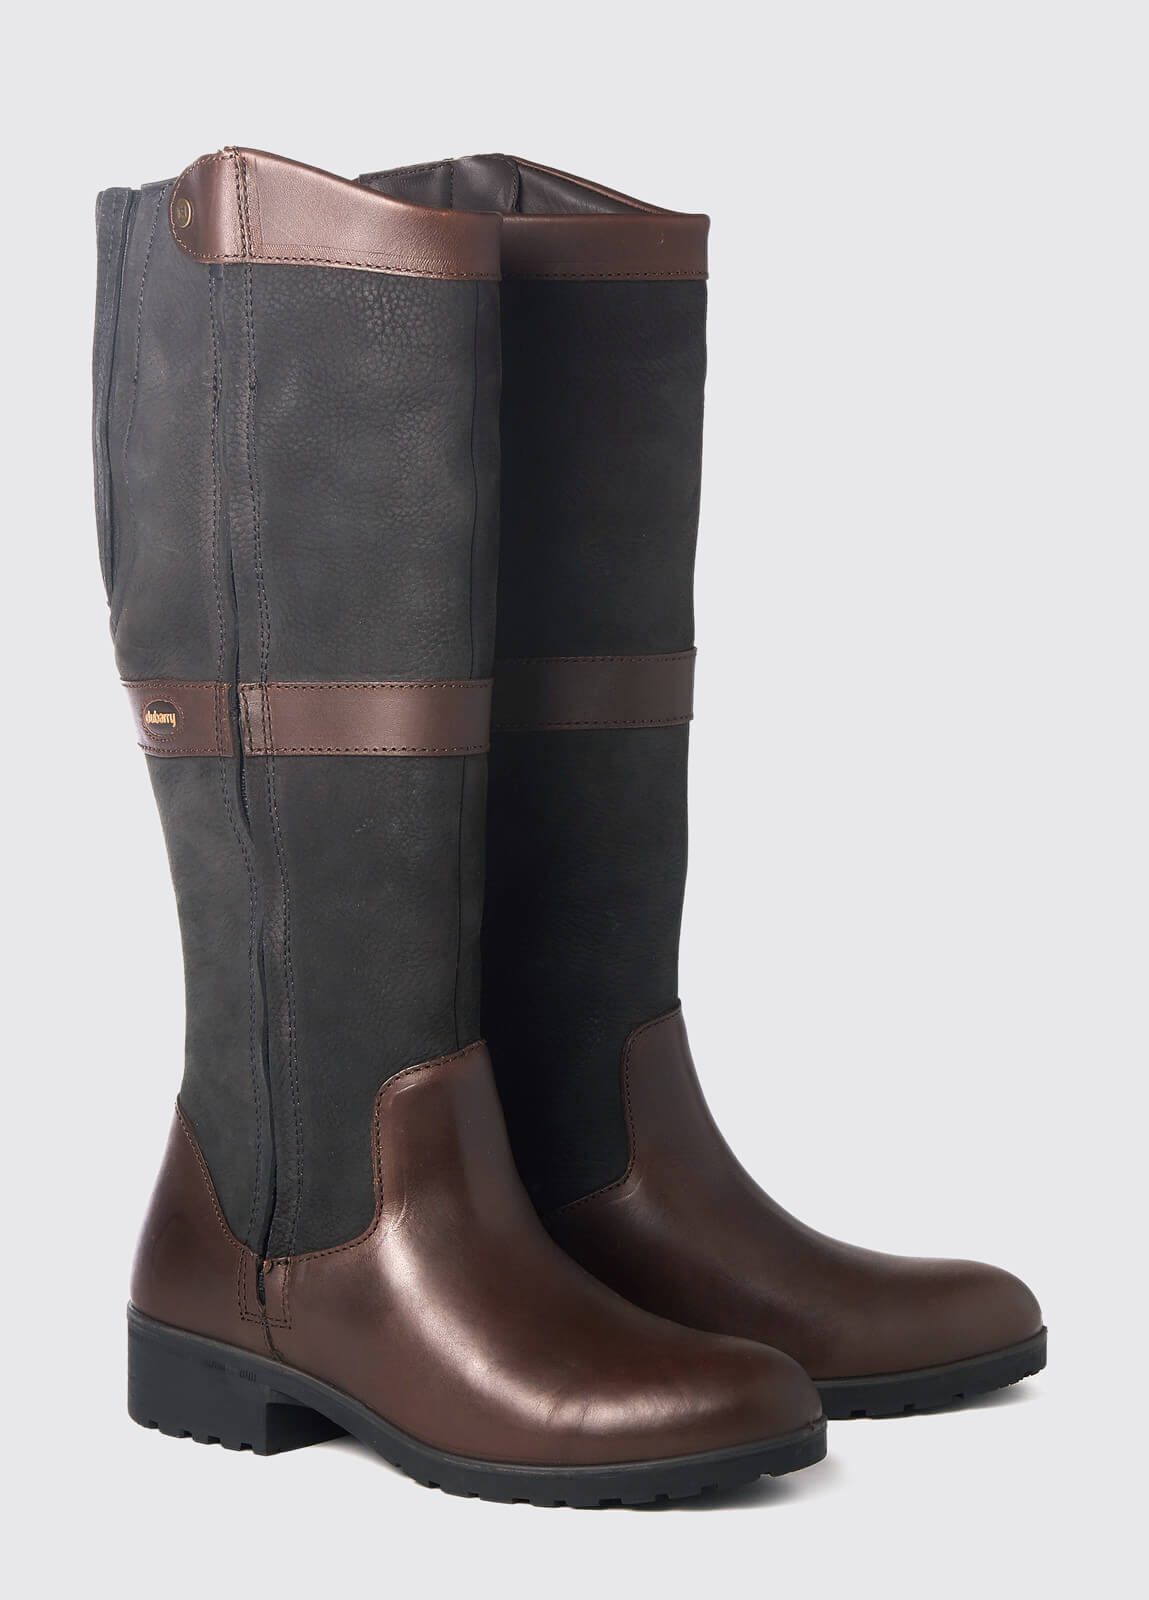 Sligo Country Boot - Black/Brown